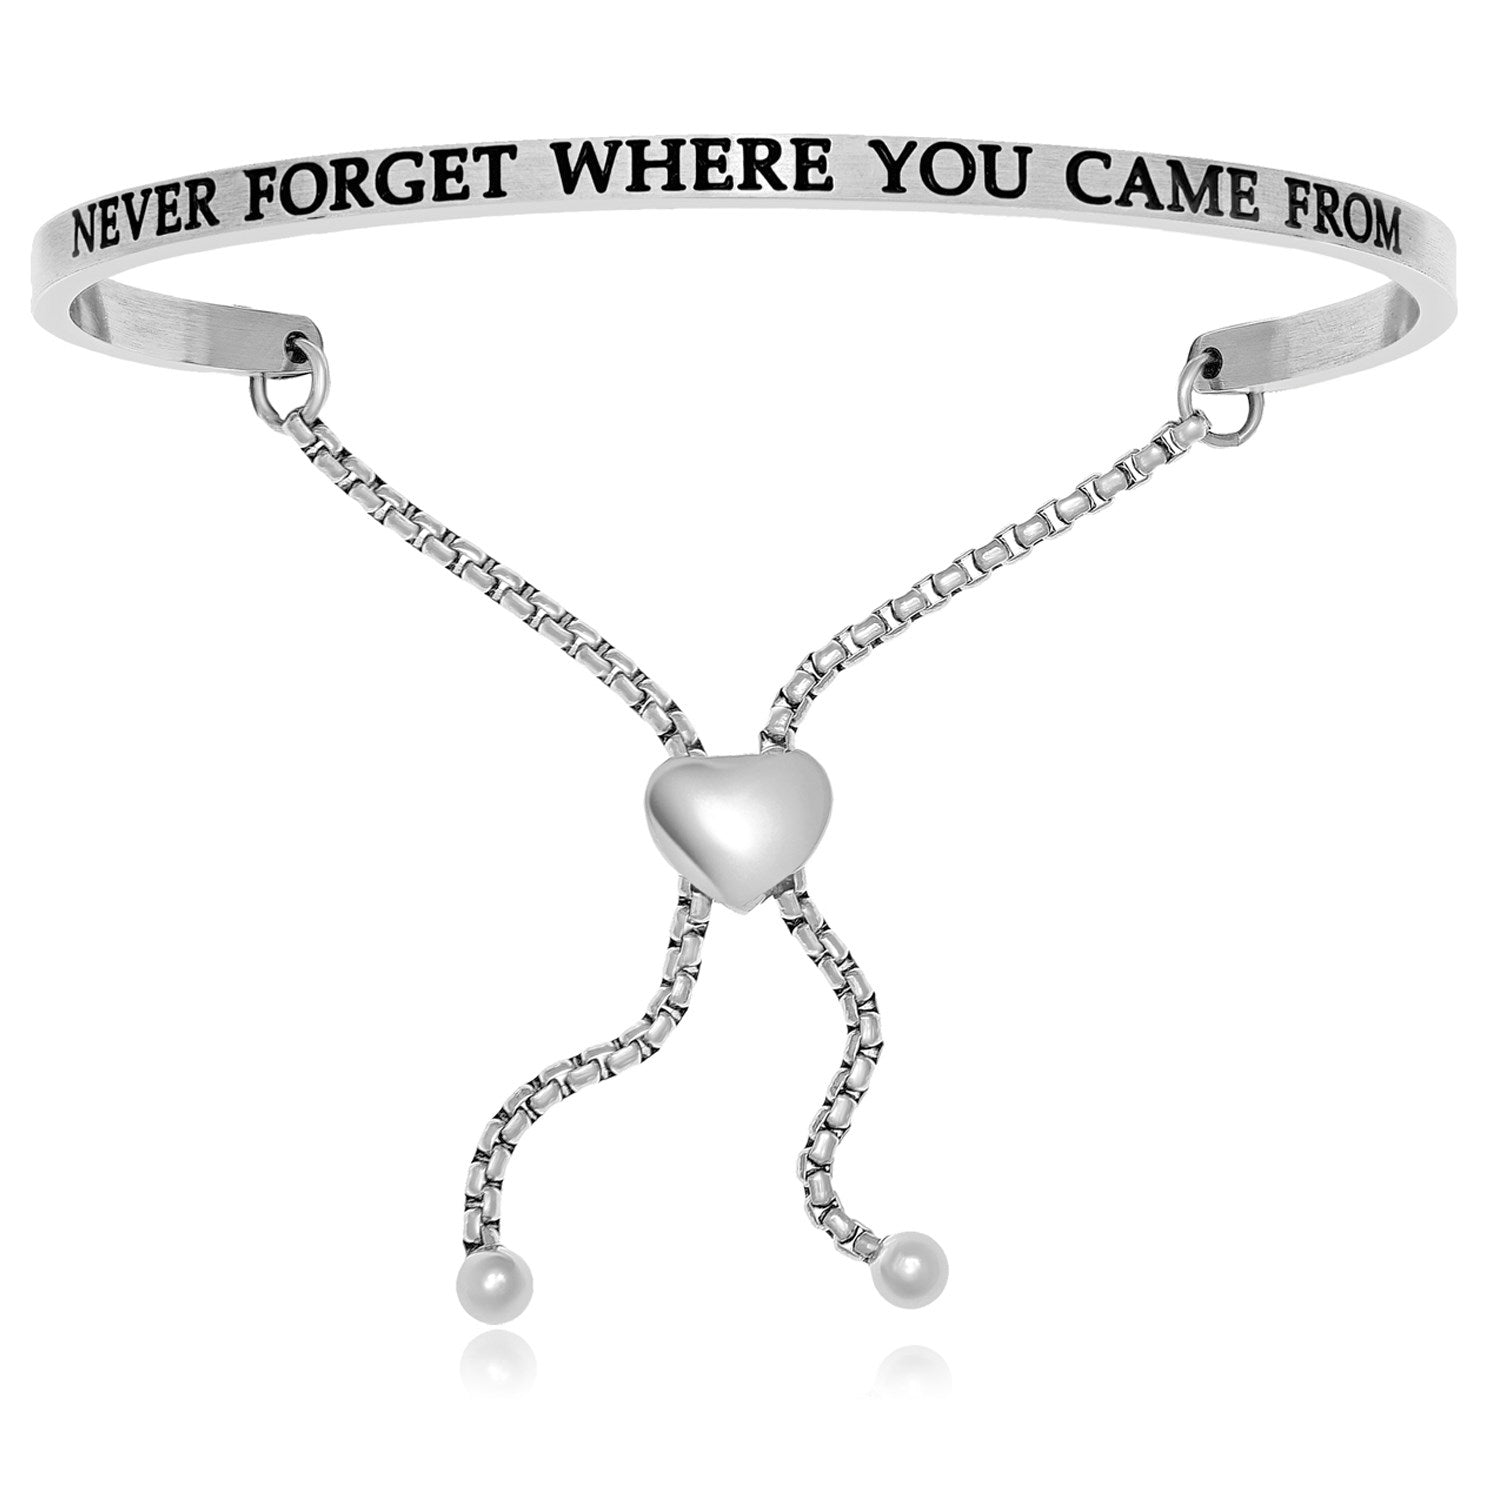 Stainless Steel Never Forget Where You Came From Adjustable Bracelet